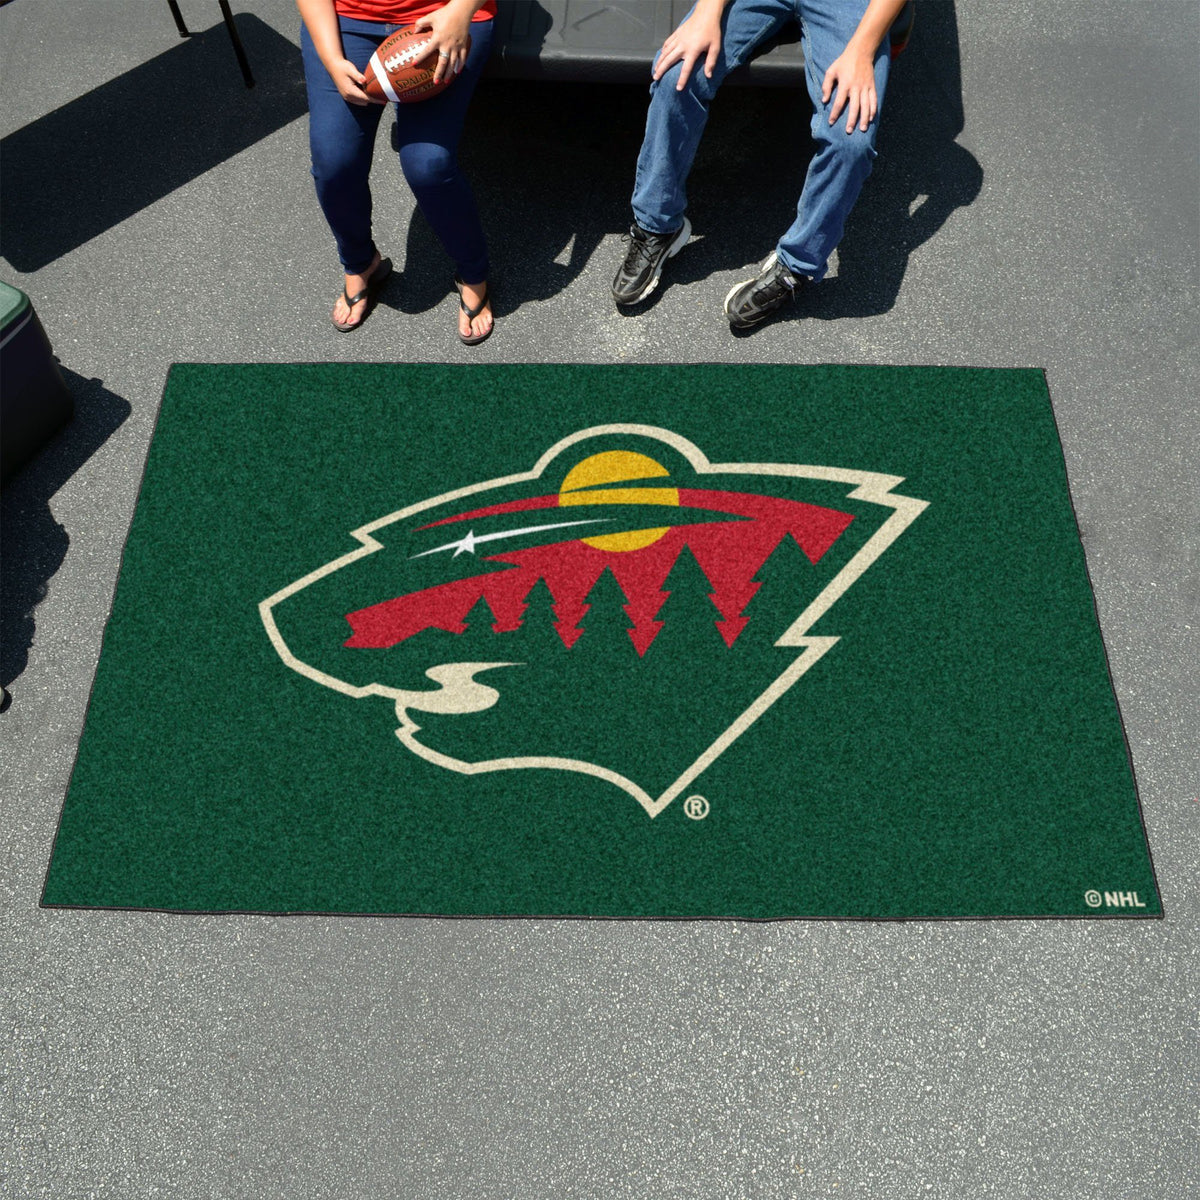 NHL - Ulti-Mat NHL Mats, Rectangular Mats, Ulti-Mat, NHL, Home Fan Mats Minnesota Wild